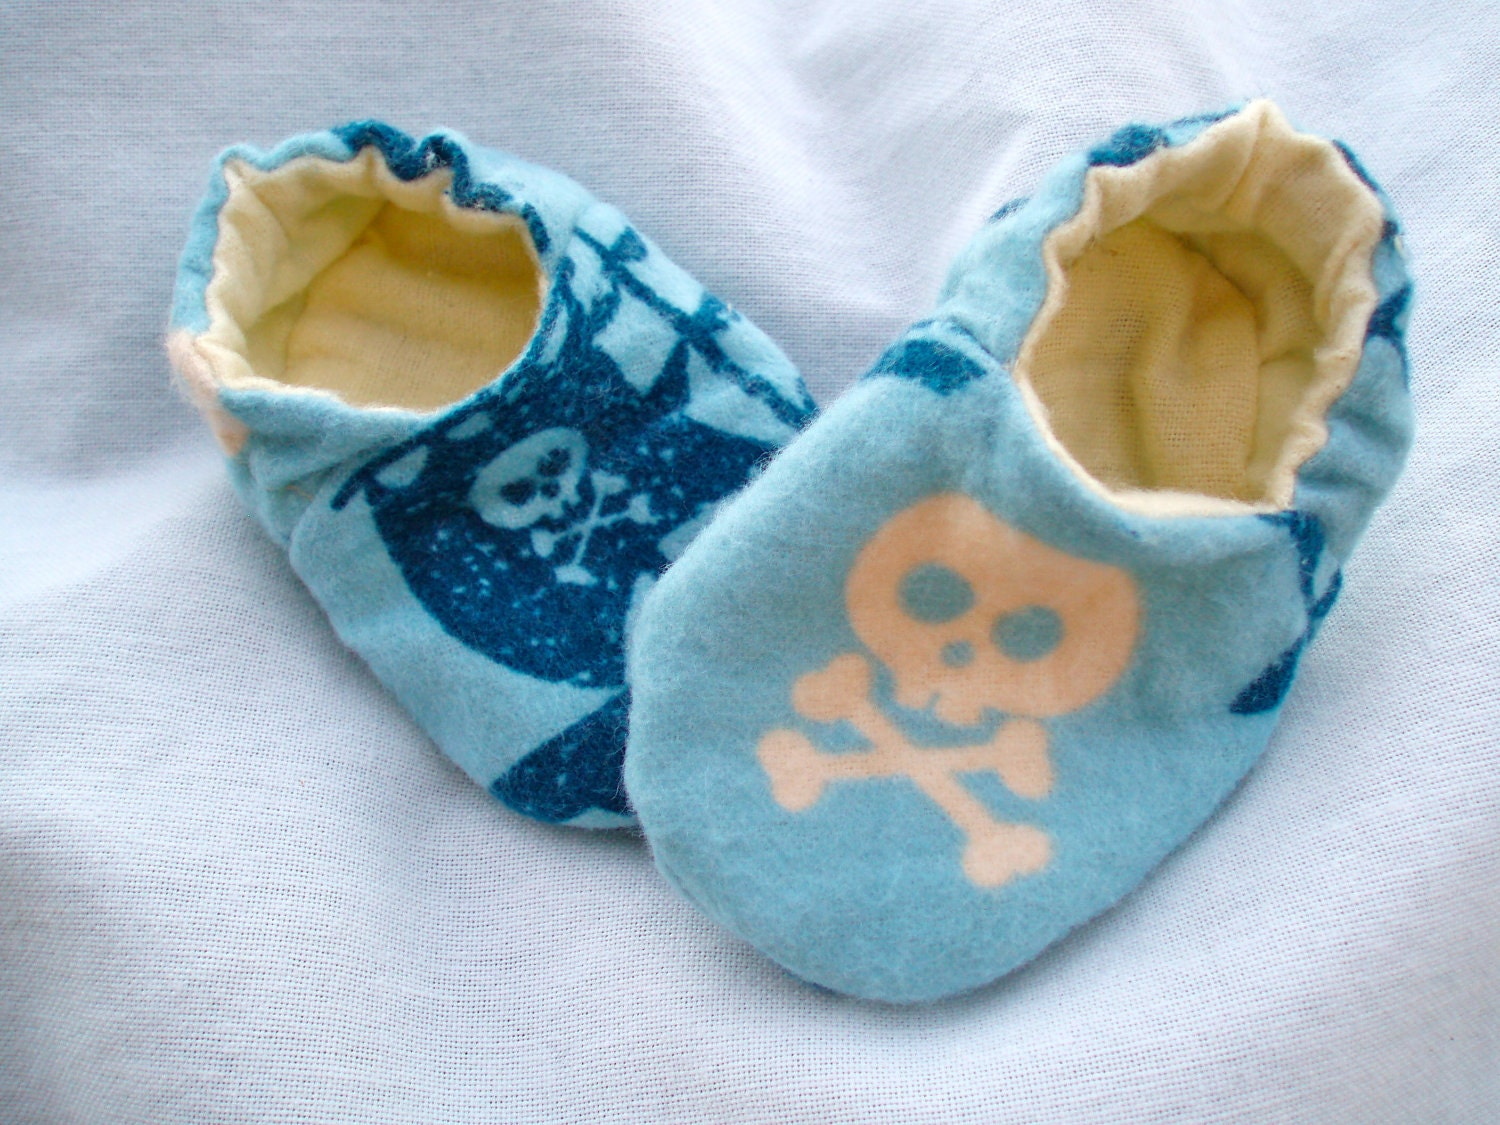 etsy.comNewborn Baby Boy Shoes Booties - Pirates. From JaclynsDesigns